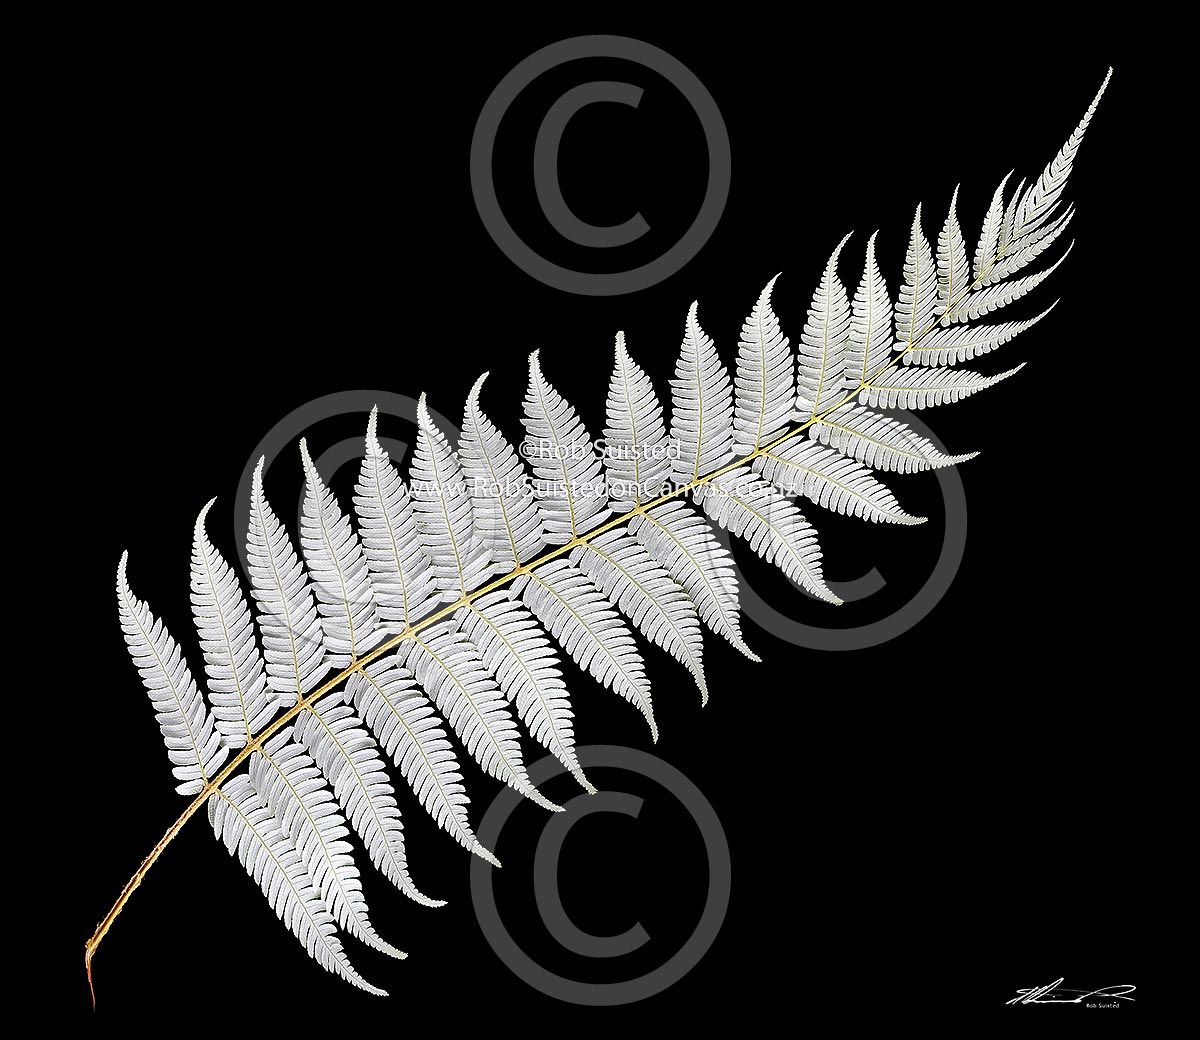 8bfdee44960c7b New Zealand art - Google Search it s the national symbol for New Zealand. Silver  Fern (New Zealand boardroom)